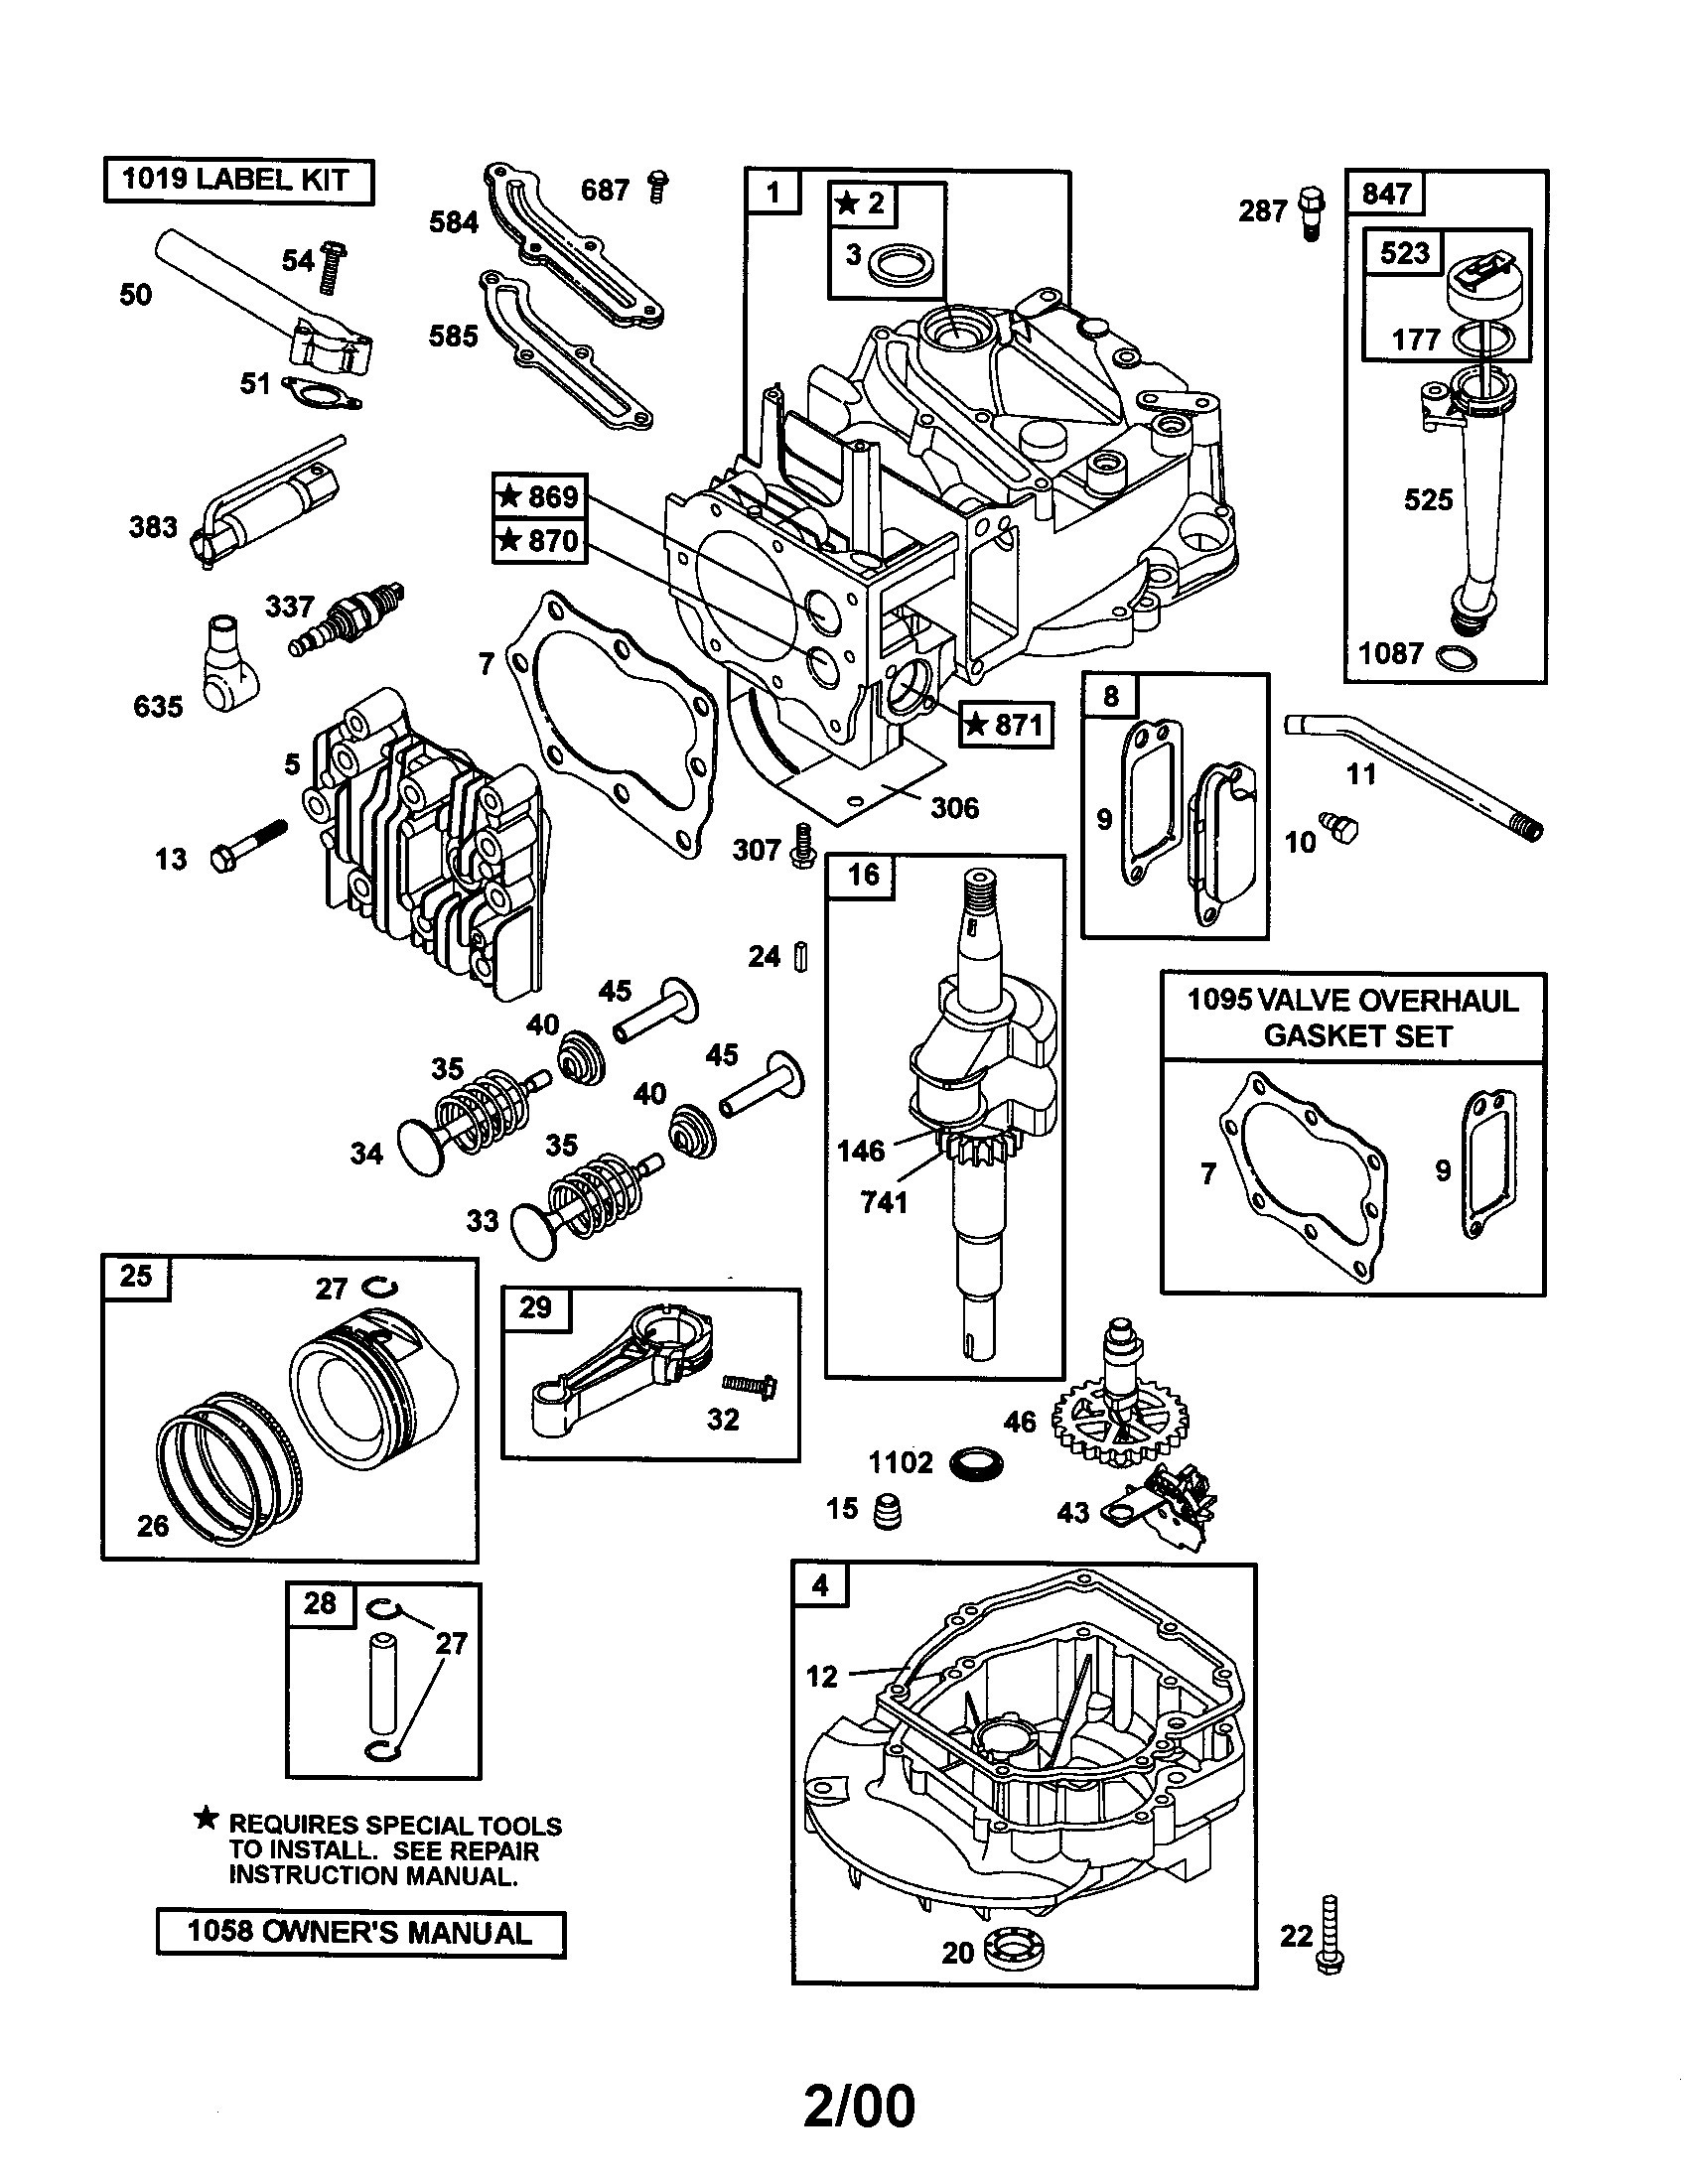 hight resolution of briggs and stratton 17 5 hp engine parts diagram briggs stratton engine diagram 2 awesome engine